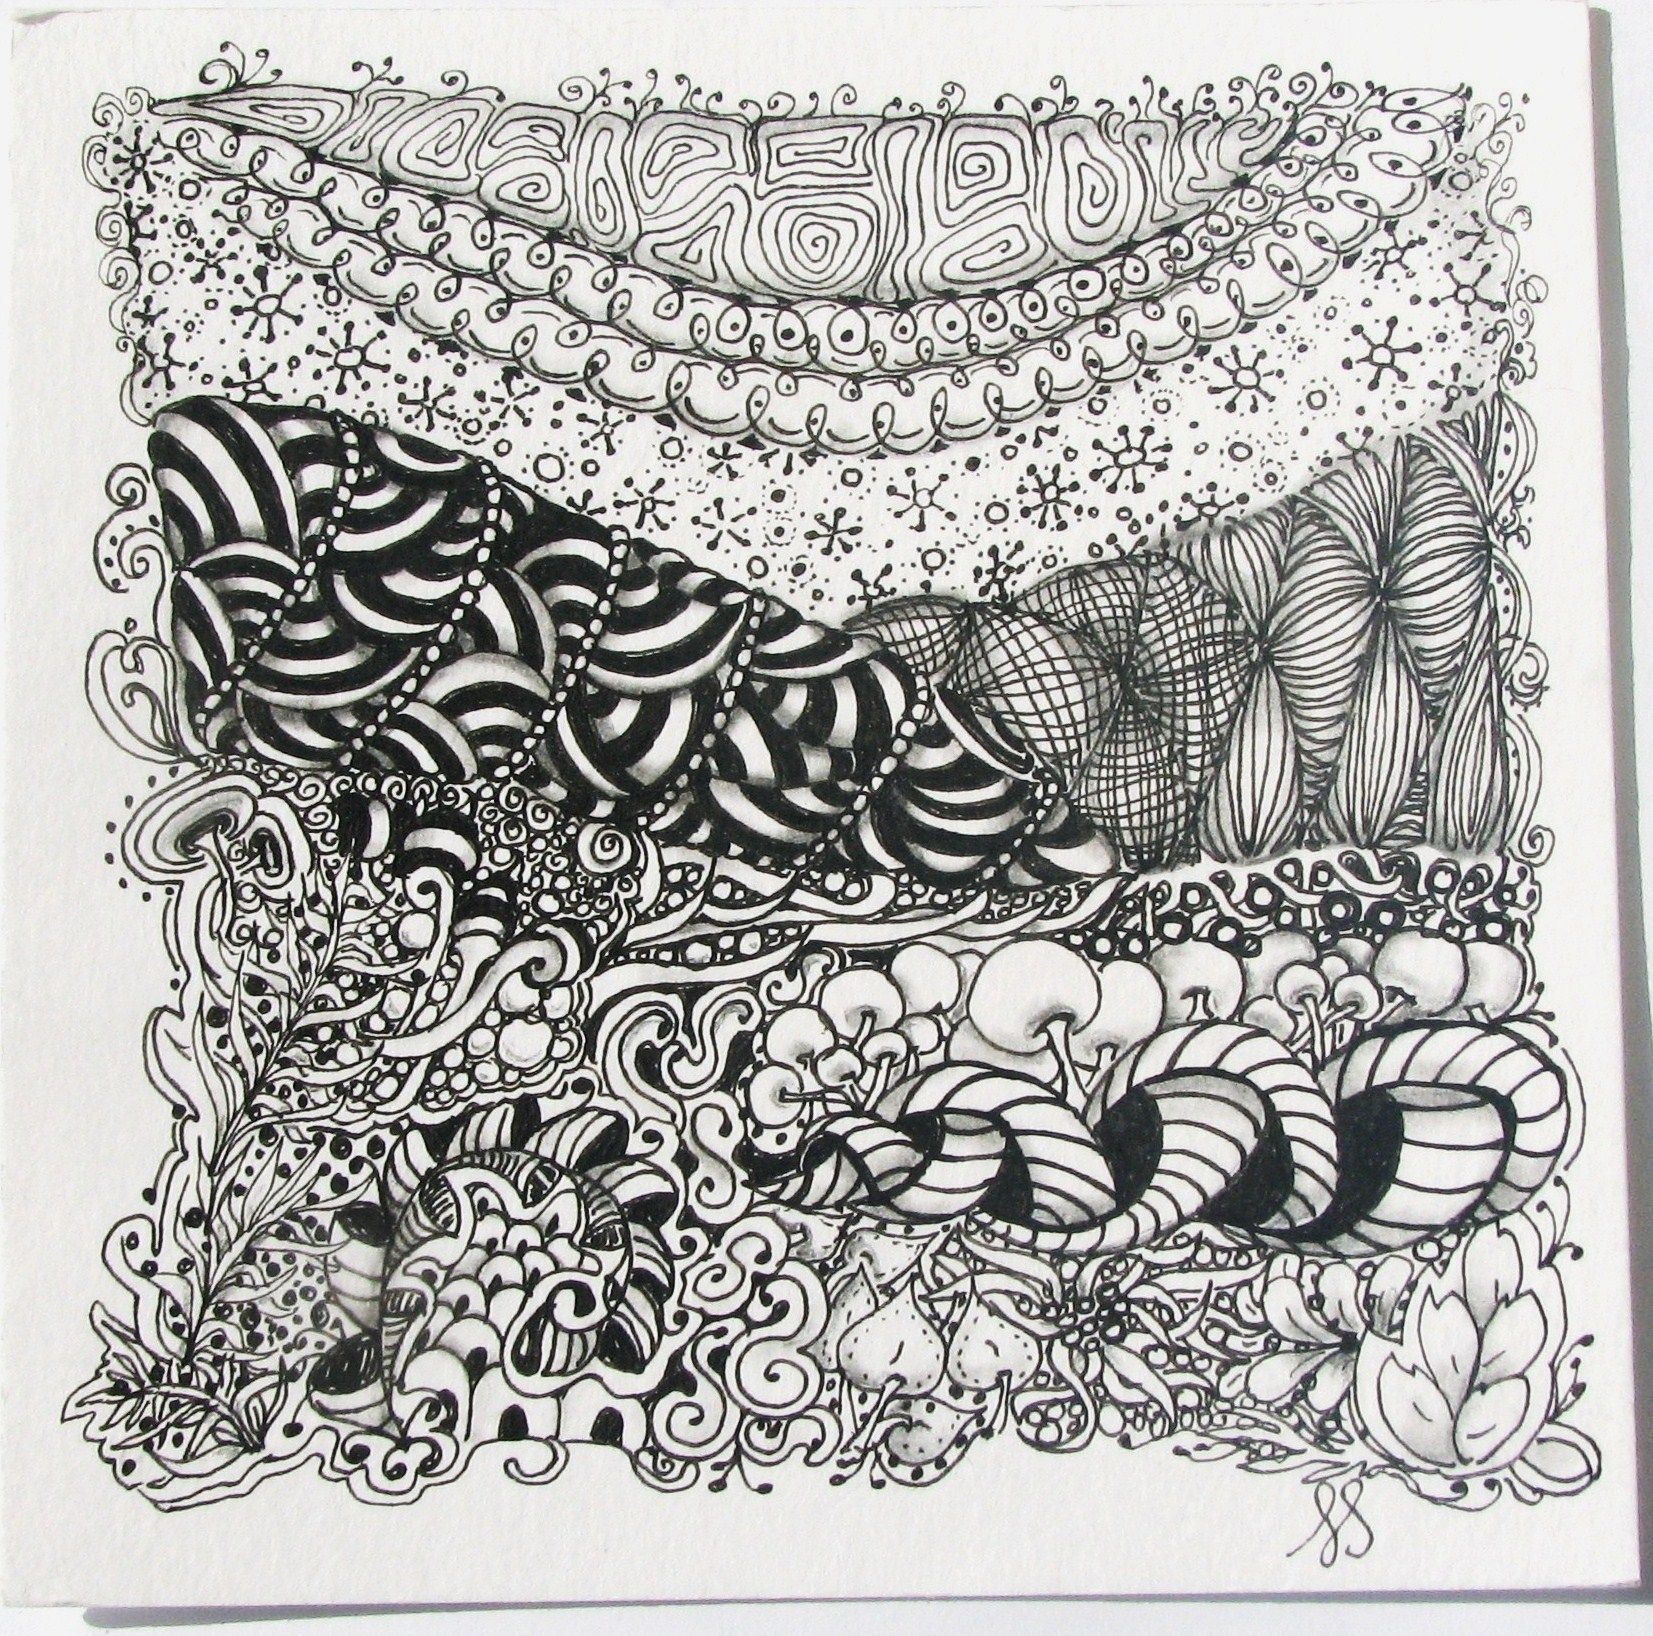 zentangle tile template - zentangle tile laurasoriginalart doodling zentangle